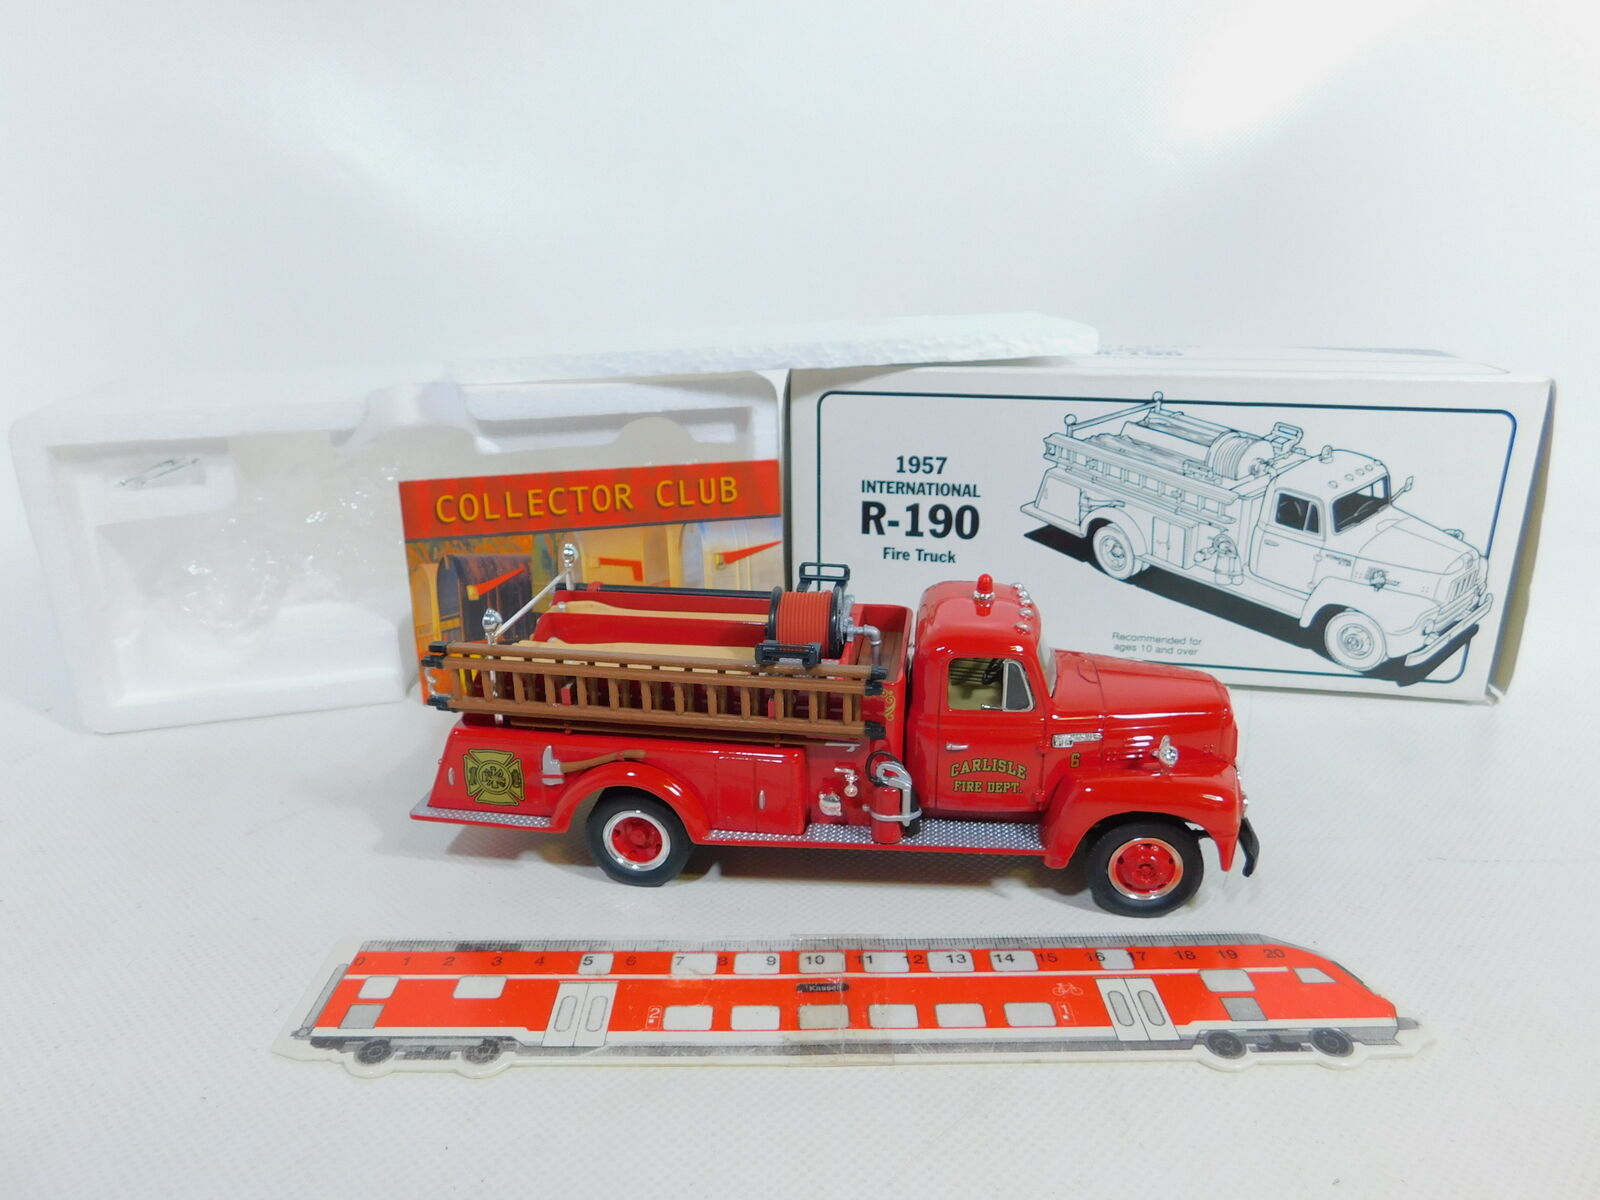 Ca80-1  First Gear 1 34 19-1333 camions Harvester r-190 1957 Pompiers FW, Neuw + neuf dans sa boîte